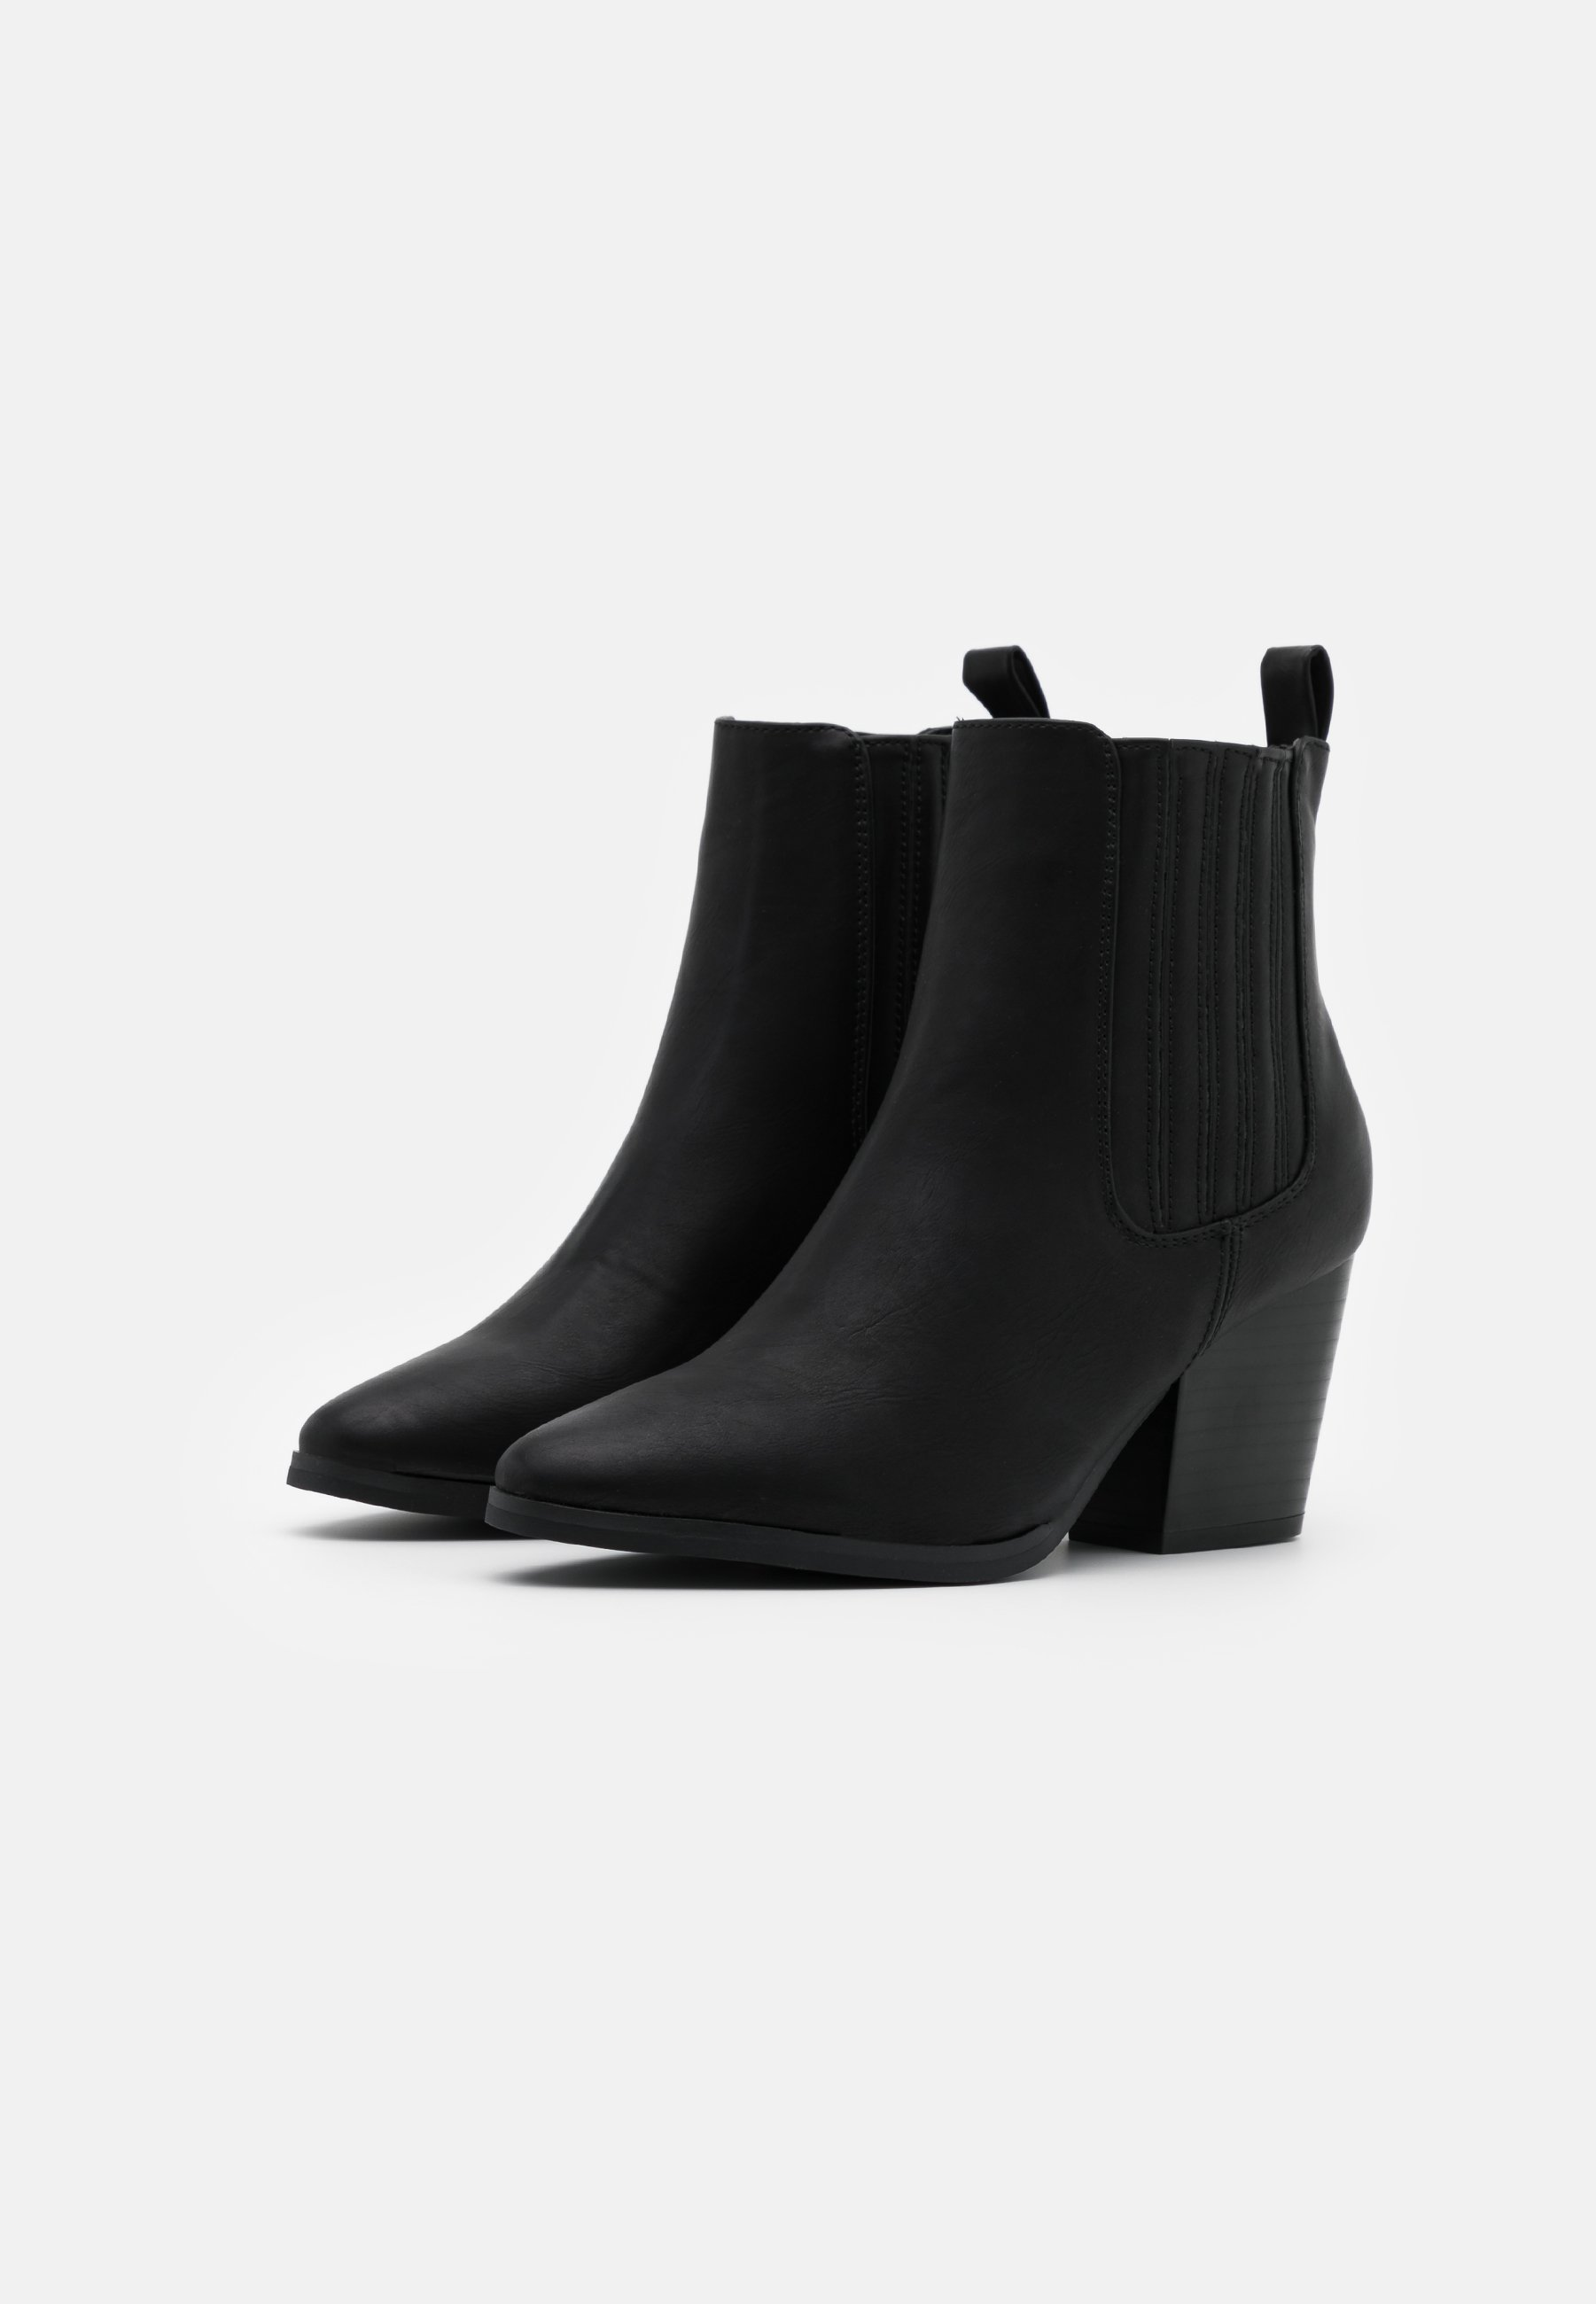 Rubi Shoes by Cotton On JOLENE GUSSET Ankle Boot black/schwarz